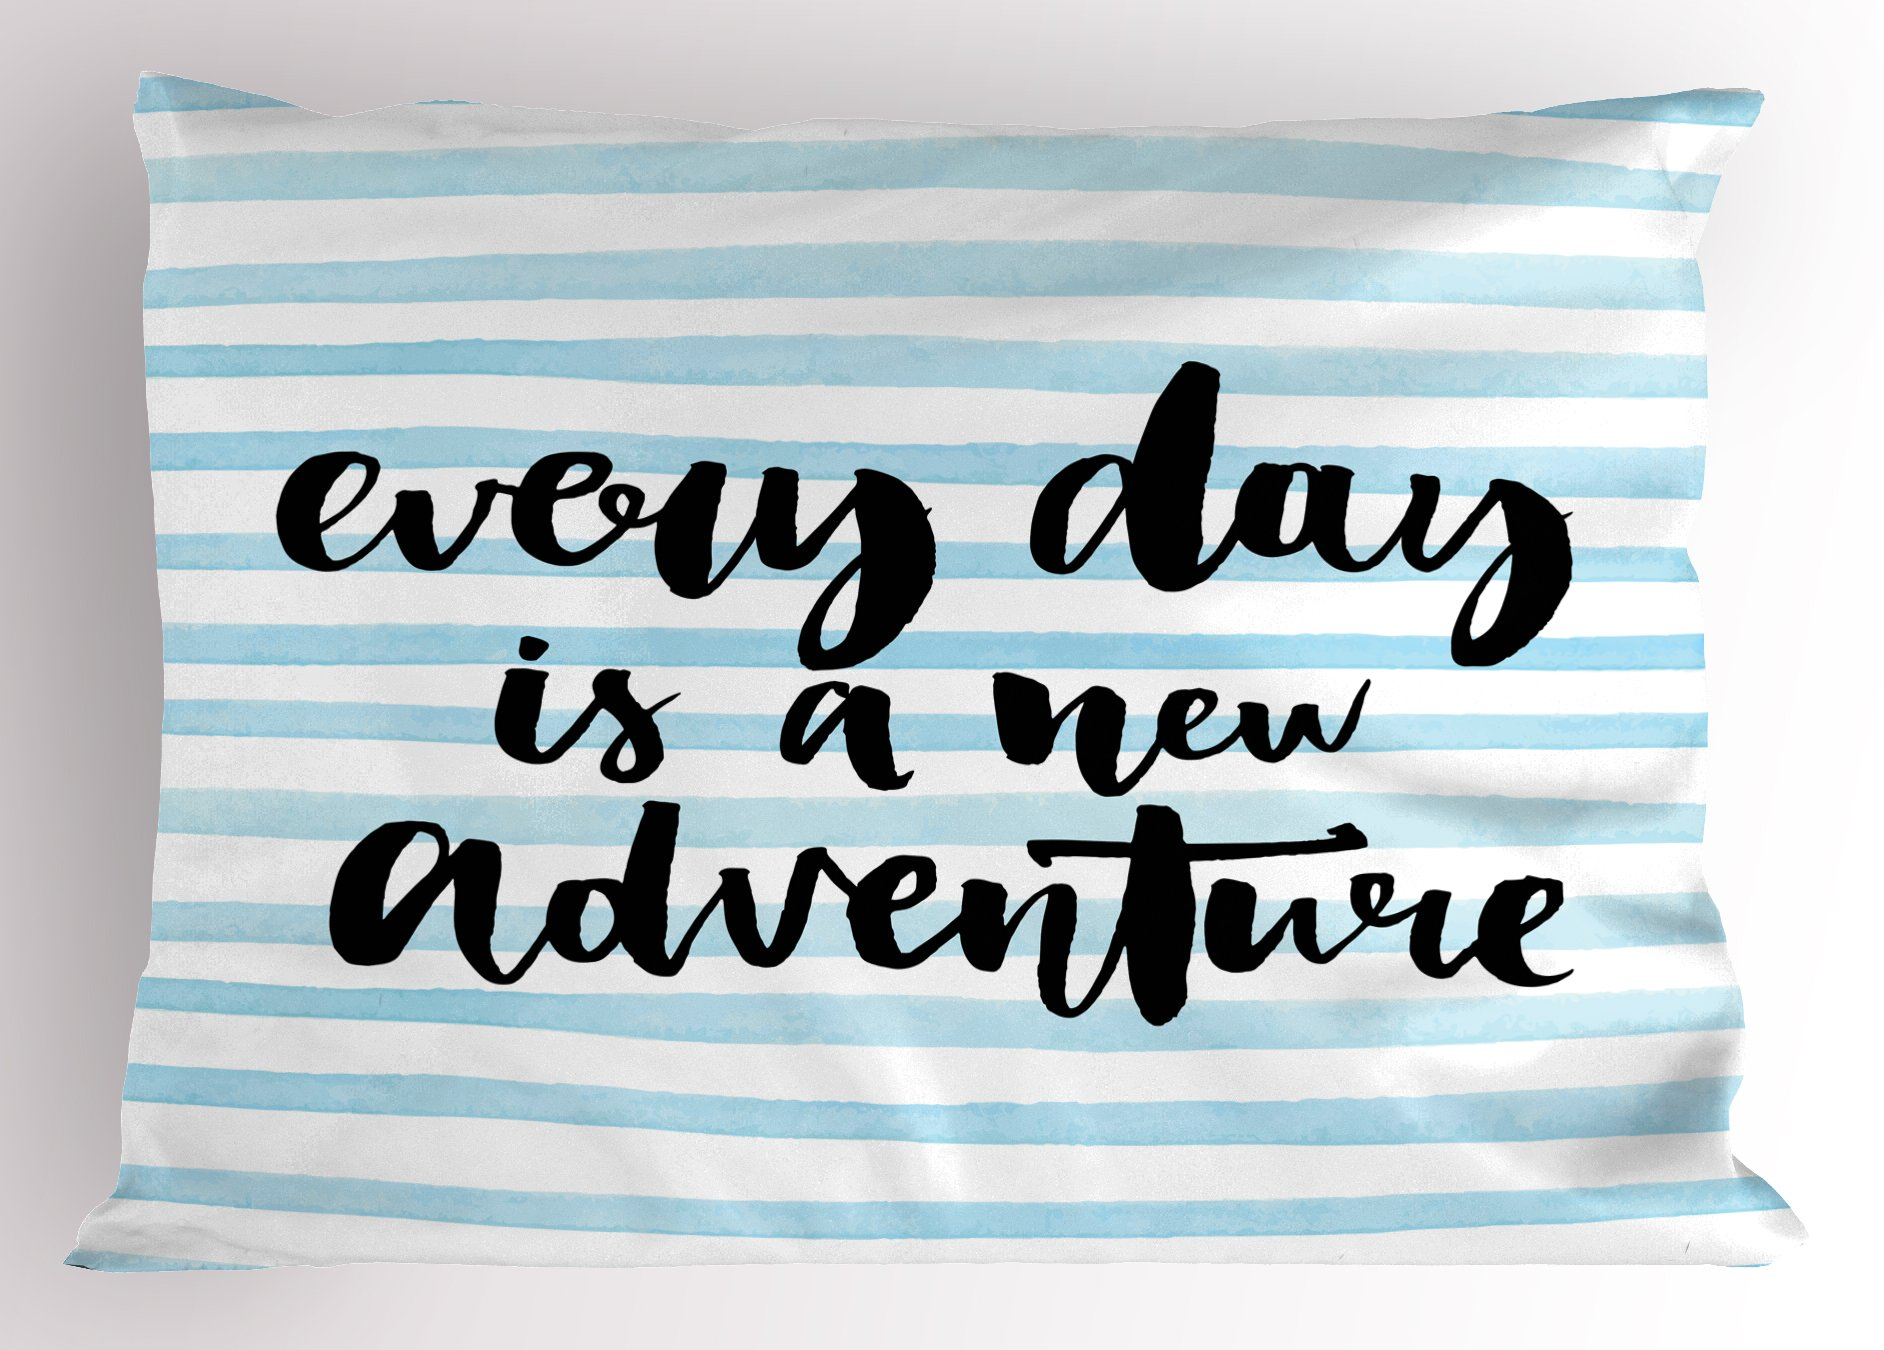 Ambesonne Adventure Pillow Sham, Every Day is a New Adventure Quote Inspirational Things About Life Artwork, Decorative Standard King Size Printed Pillowcase, 36 X 20 inches, Baby Blue Black by Ambesonne